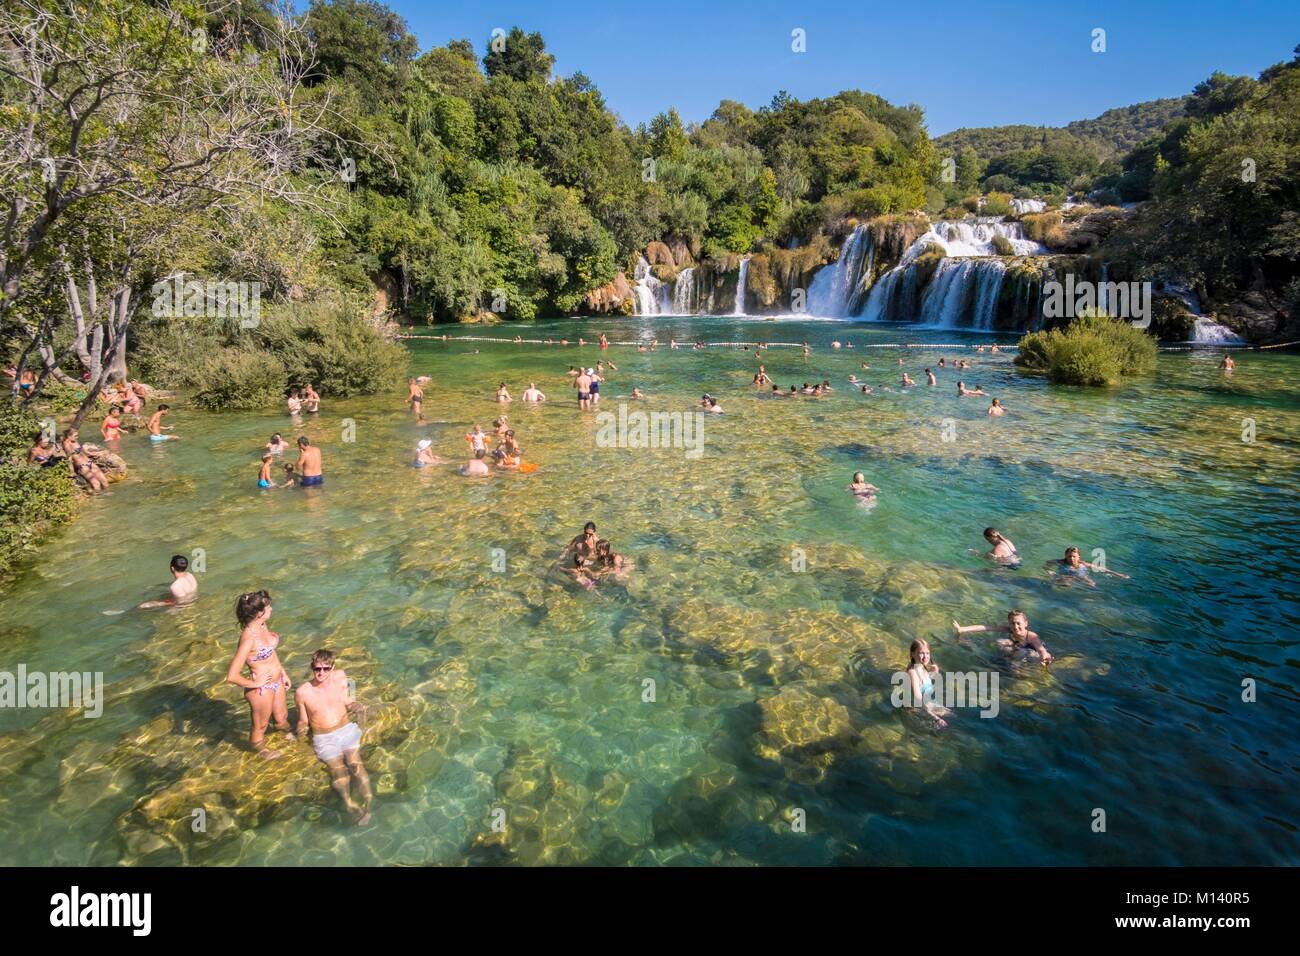 Croatia, North Dalmatia, Krka National Park, Krka River Falls at Skradinski Buk - Stock Image